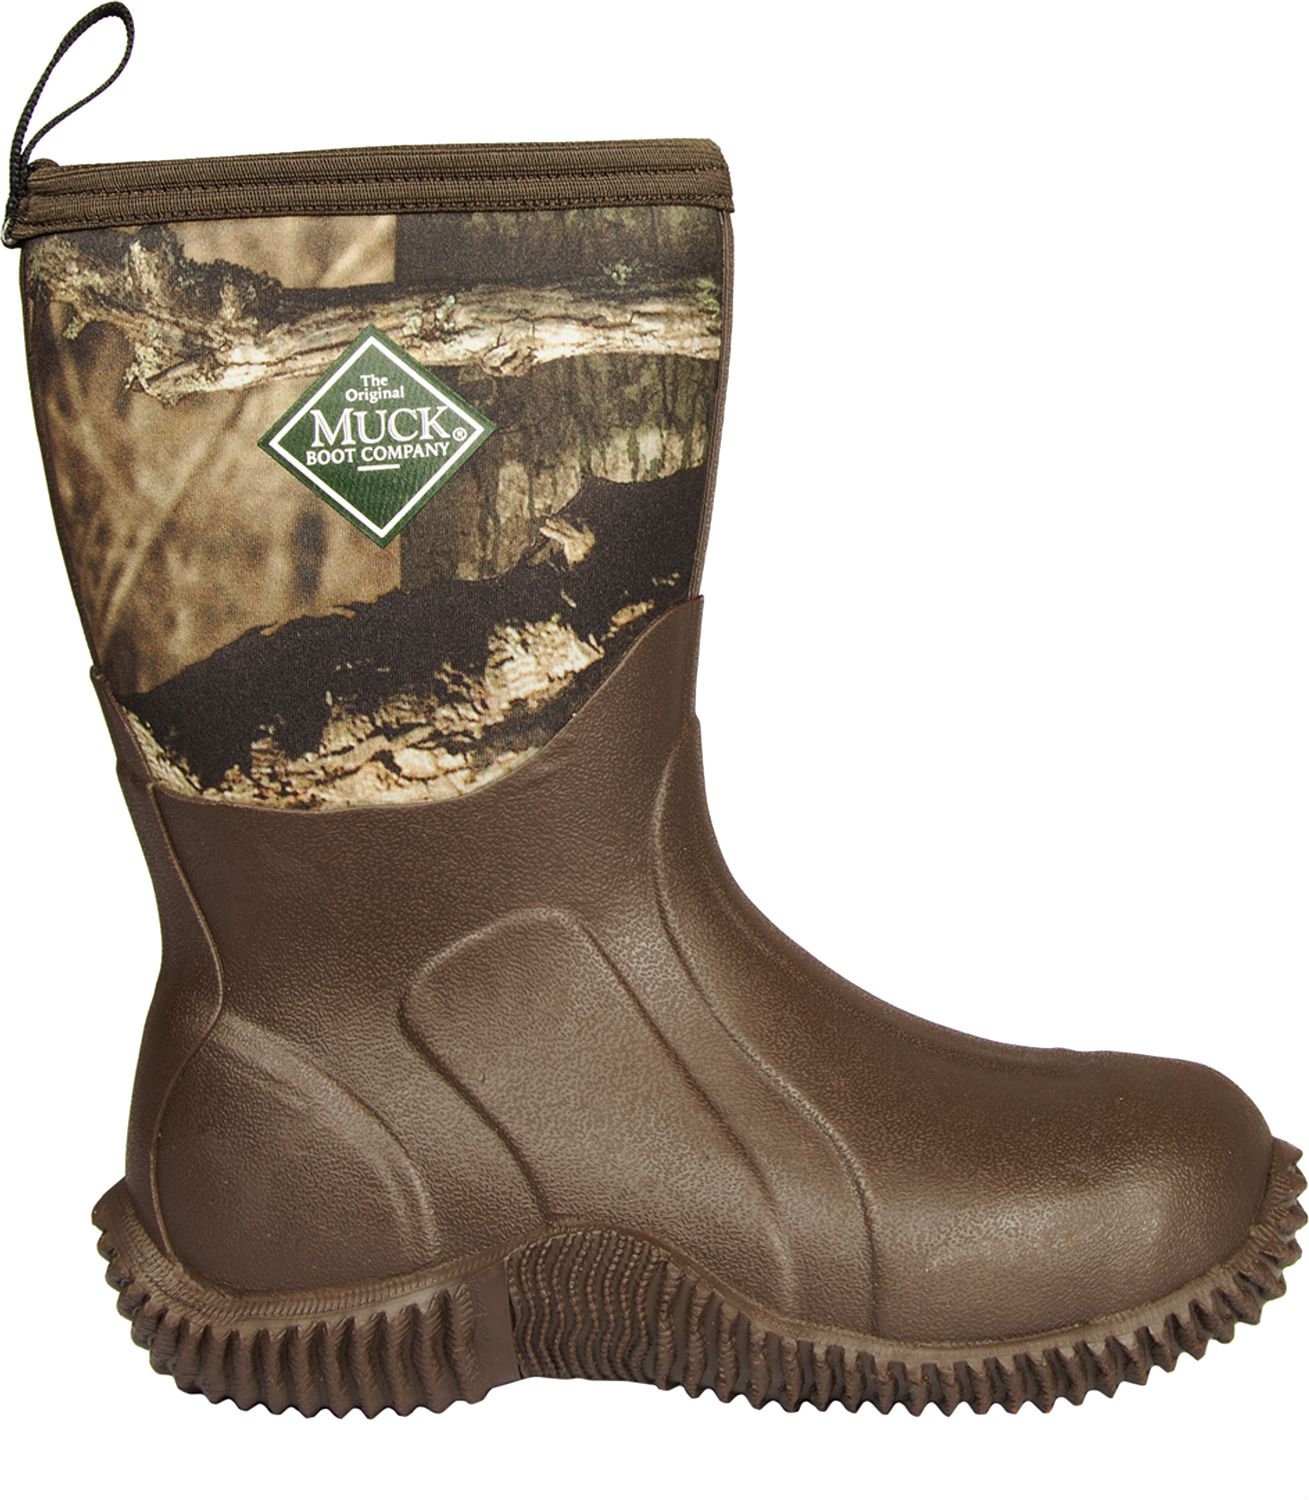 Muck Boots for Kids | DICK'S Sporting Goods